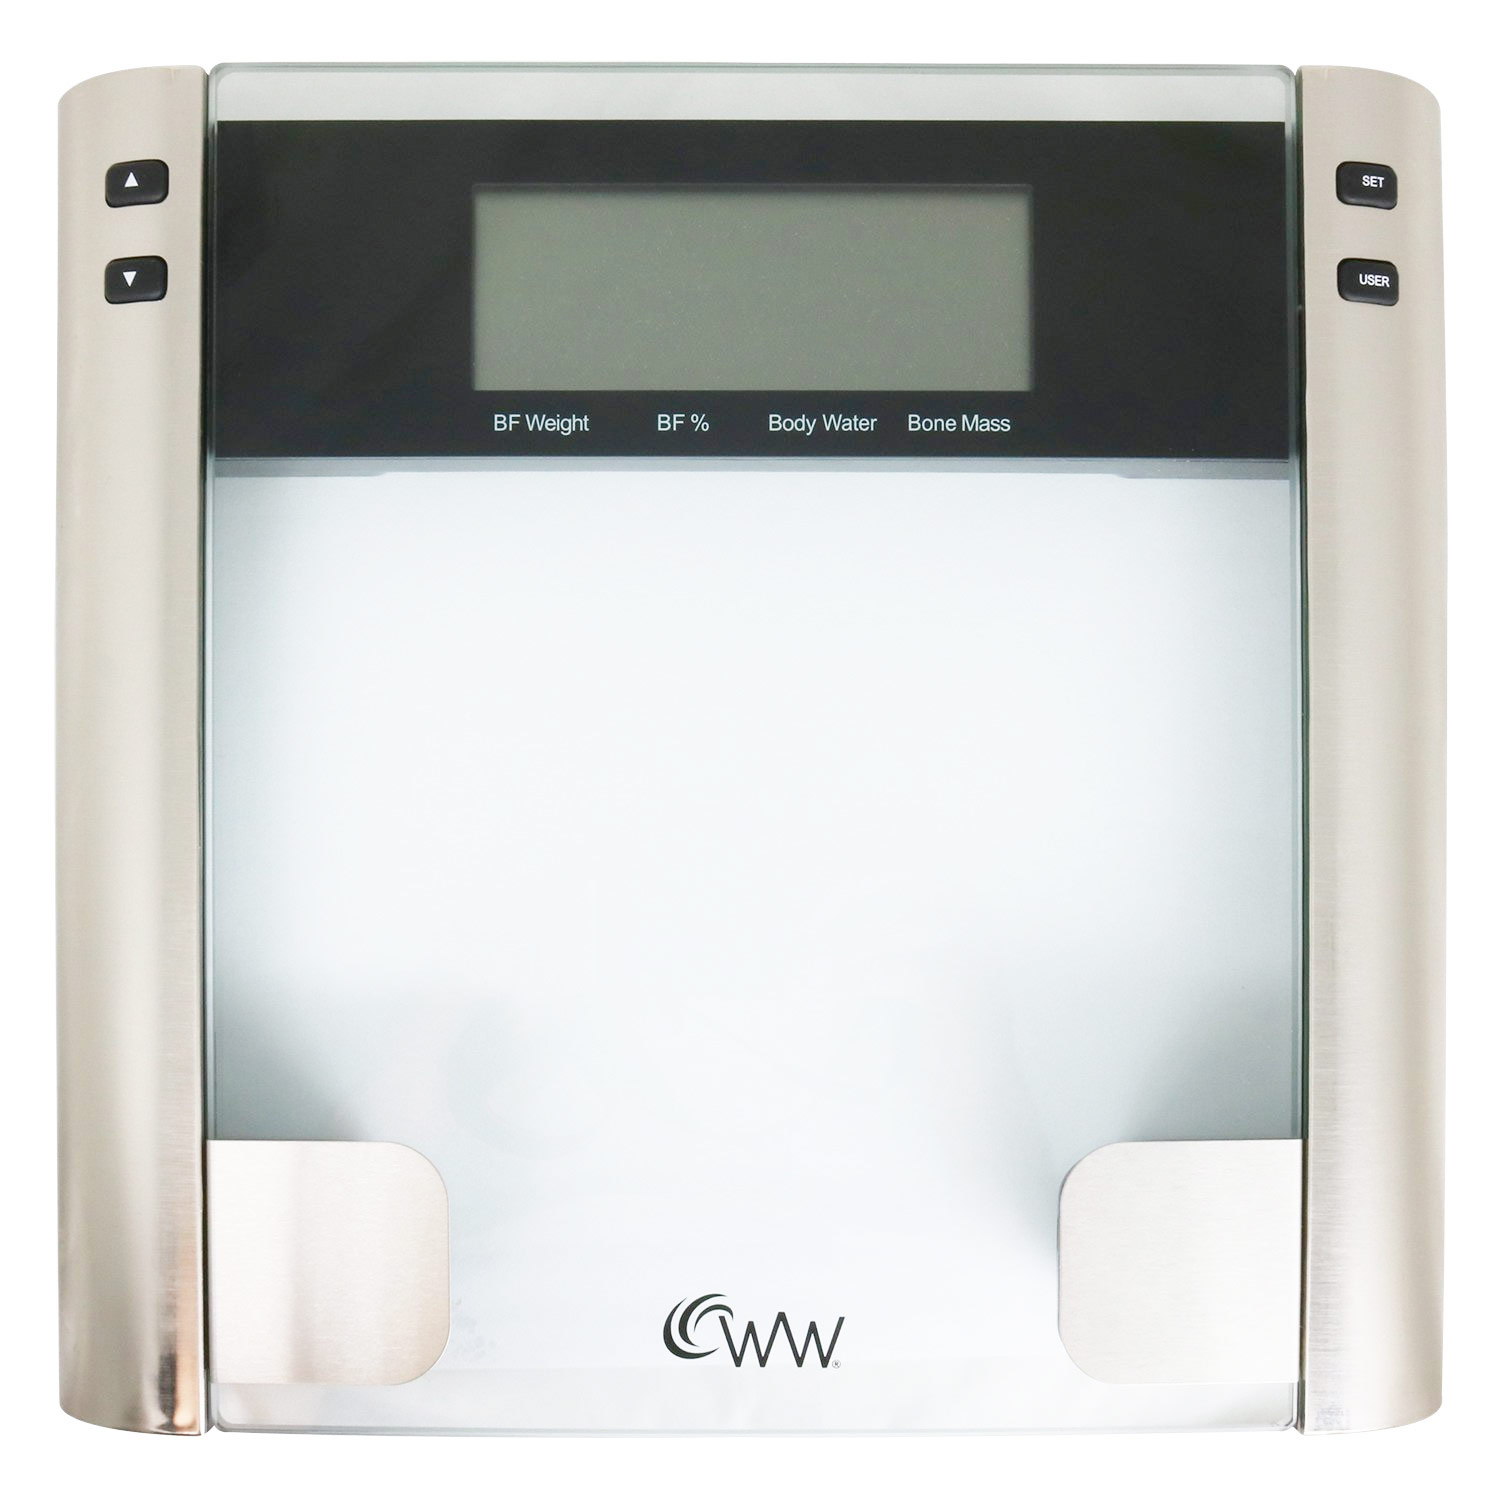 Health o meter hdm165dq 53 digital medical scale ebay - Weight Watchers 15818 Glass Body Analysis Scale